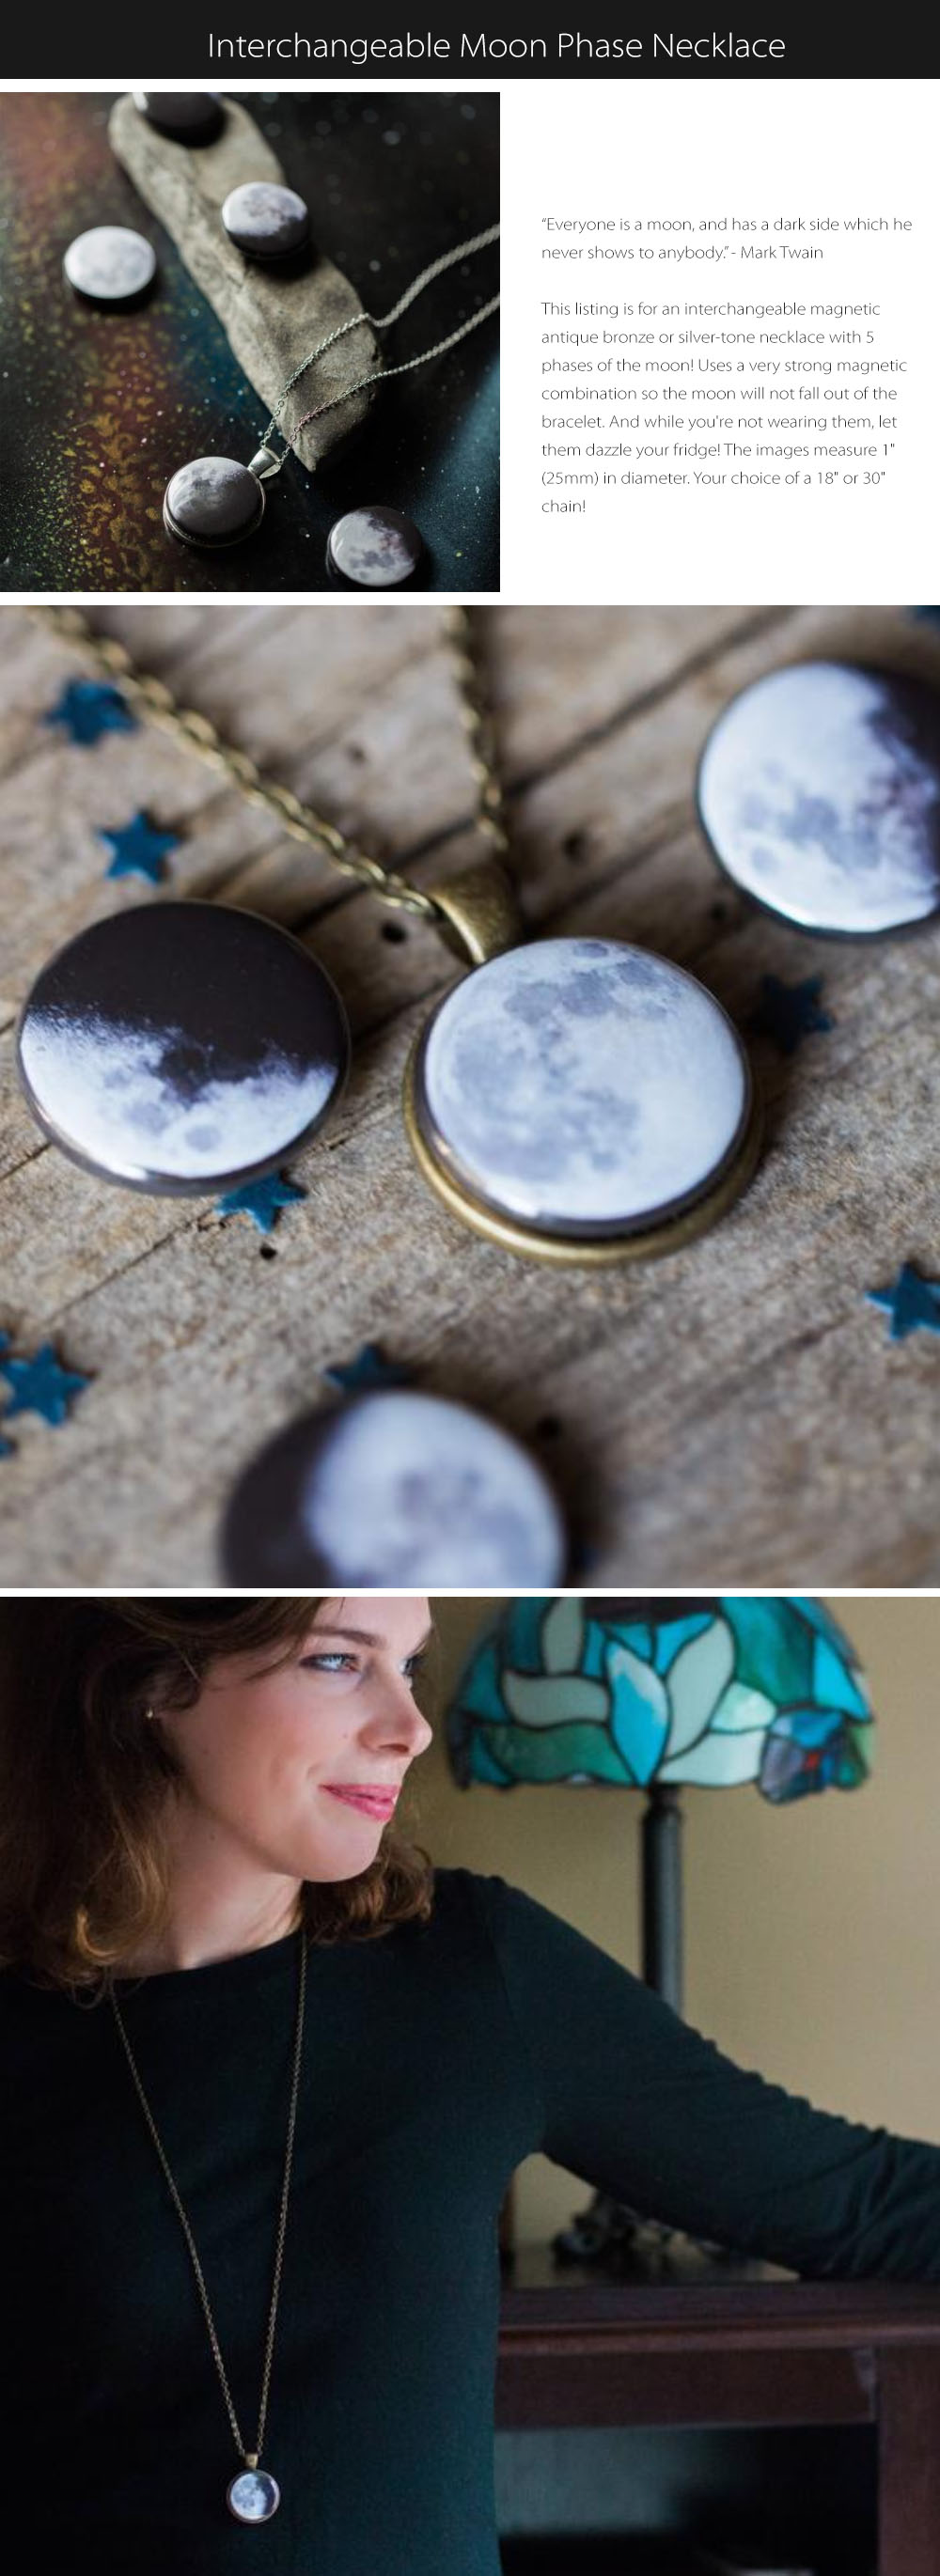 Interchangeable Moon Phase Necklace Everyone Is A Moon